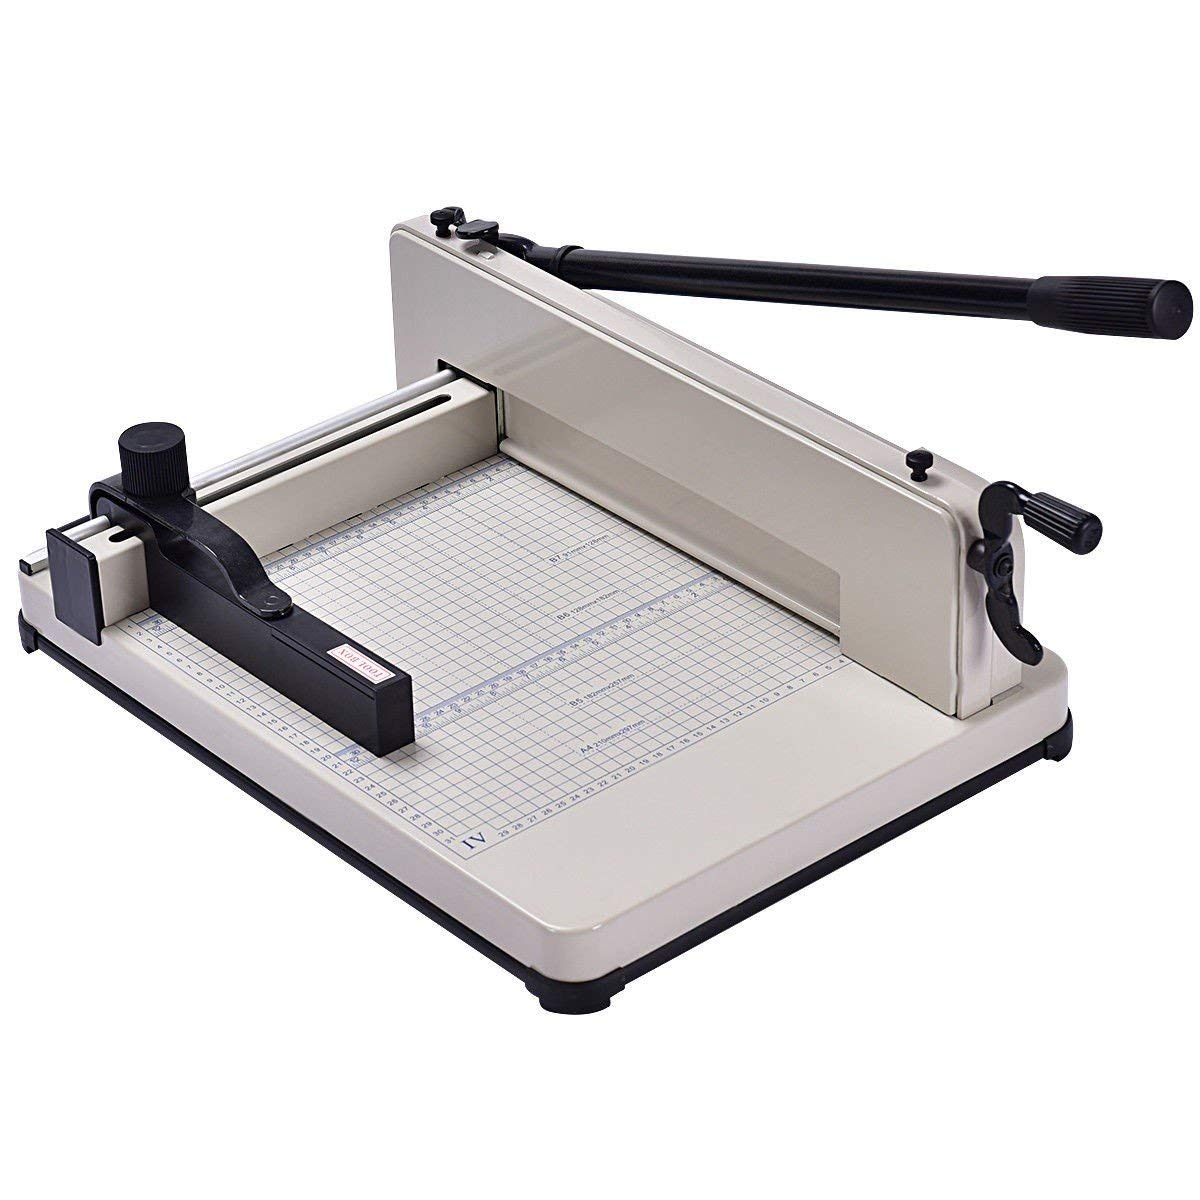 Paper Cutter Trimmer Machine A4 Size 12 inch Heavy Duty Steel Blade Office Cutting Tools MD Group